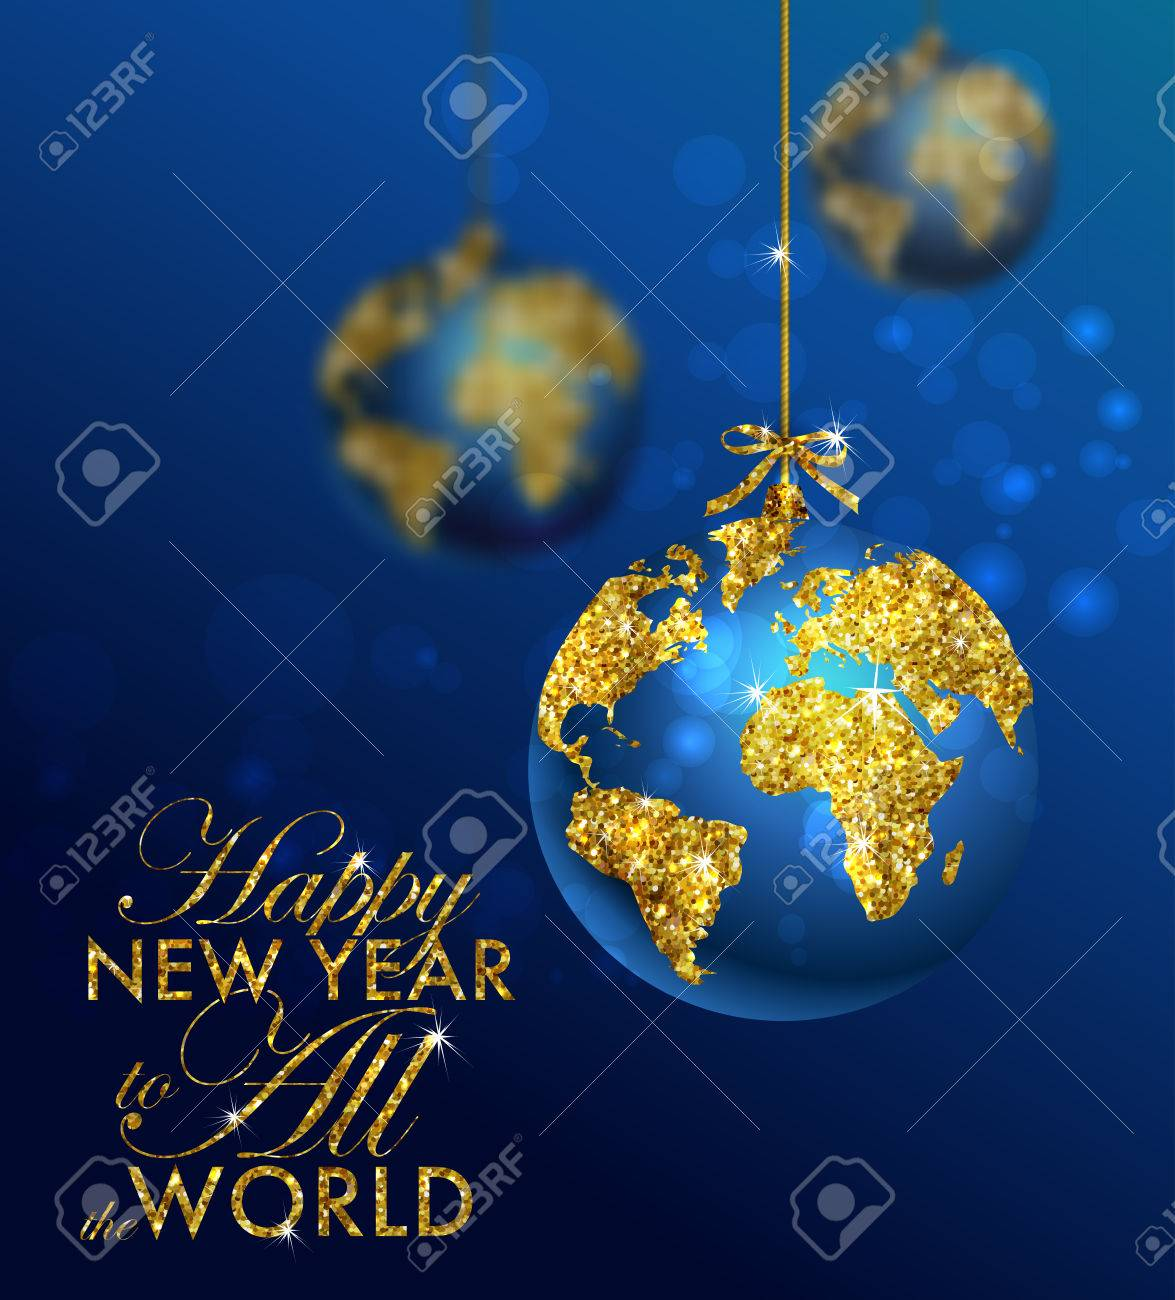 Glitter christmas ball with world map. Greeting Card with typography and gold world globe. Merry Christmas concept. Background with golden calligraphic elements - 57548911